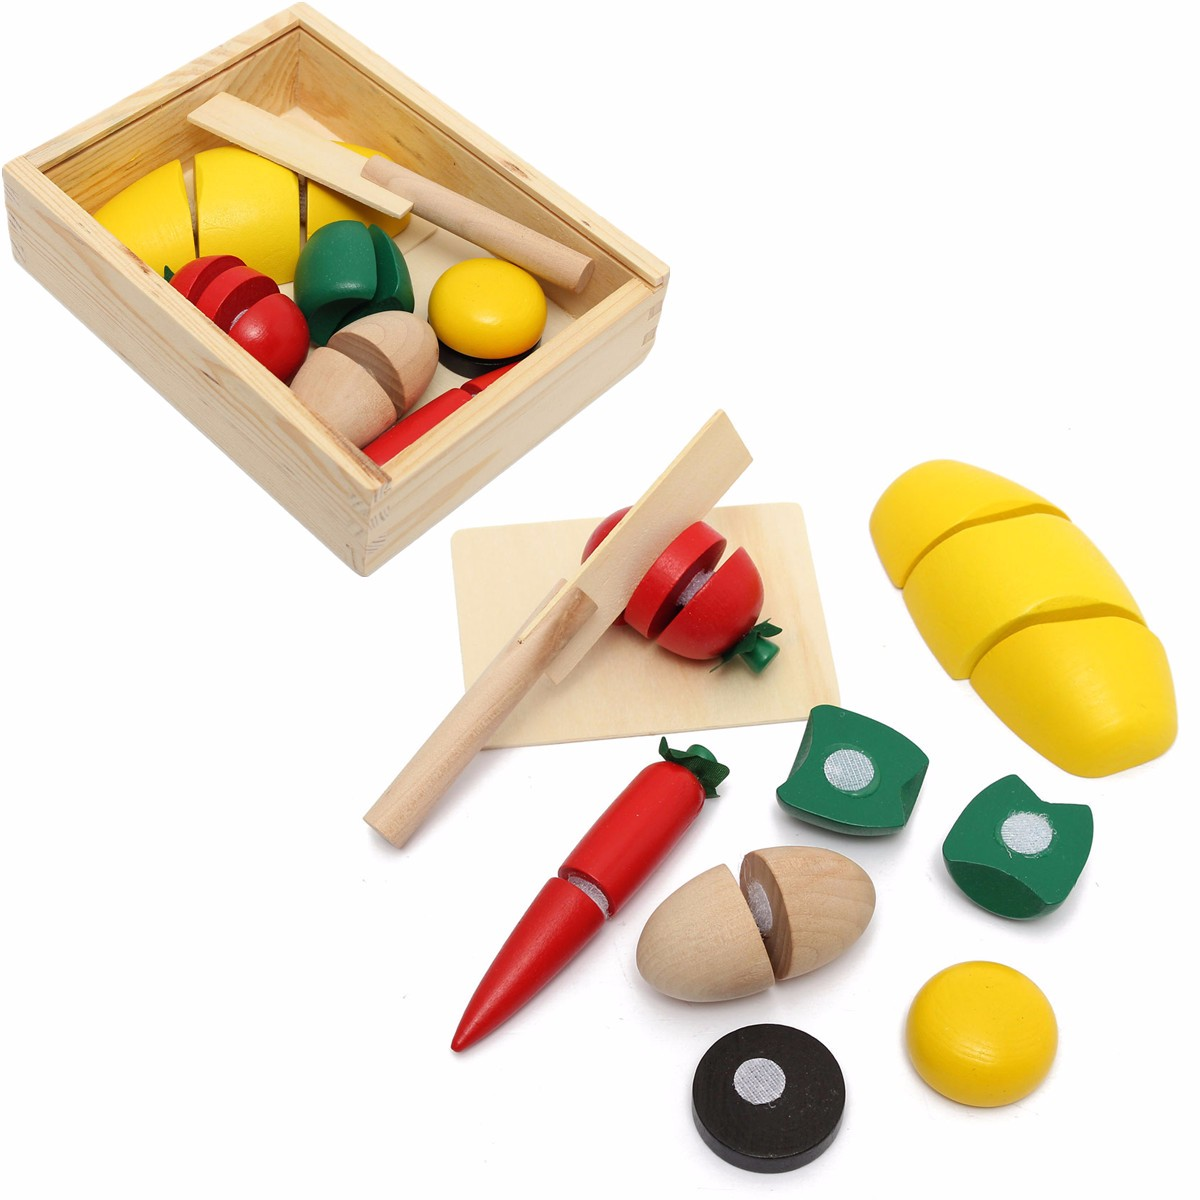 Play Cooking Toys : Kitchen pretend play toy setwooden food fruit vegetable